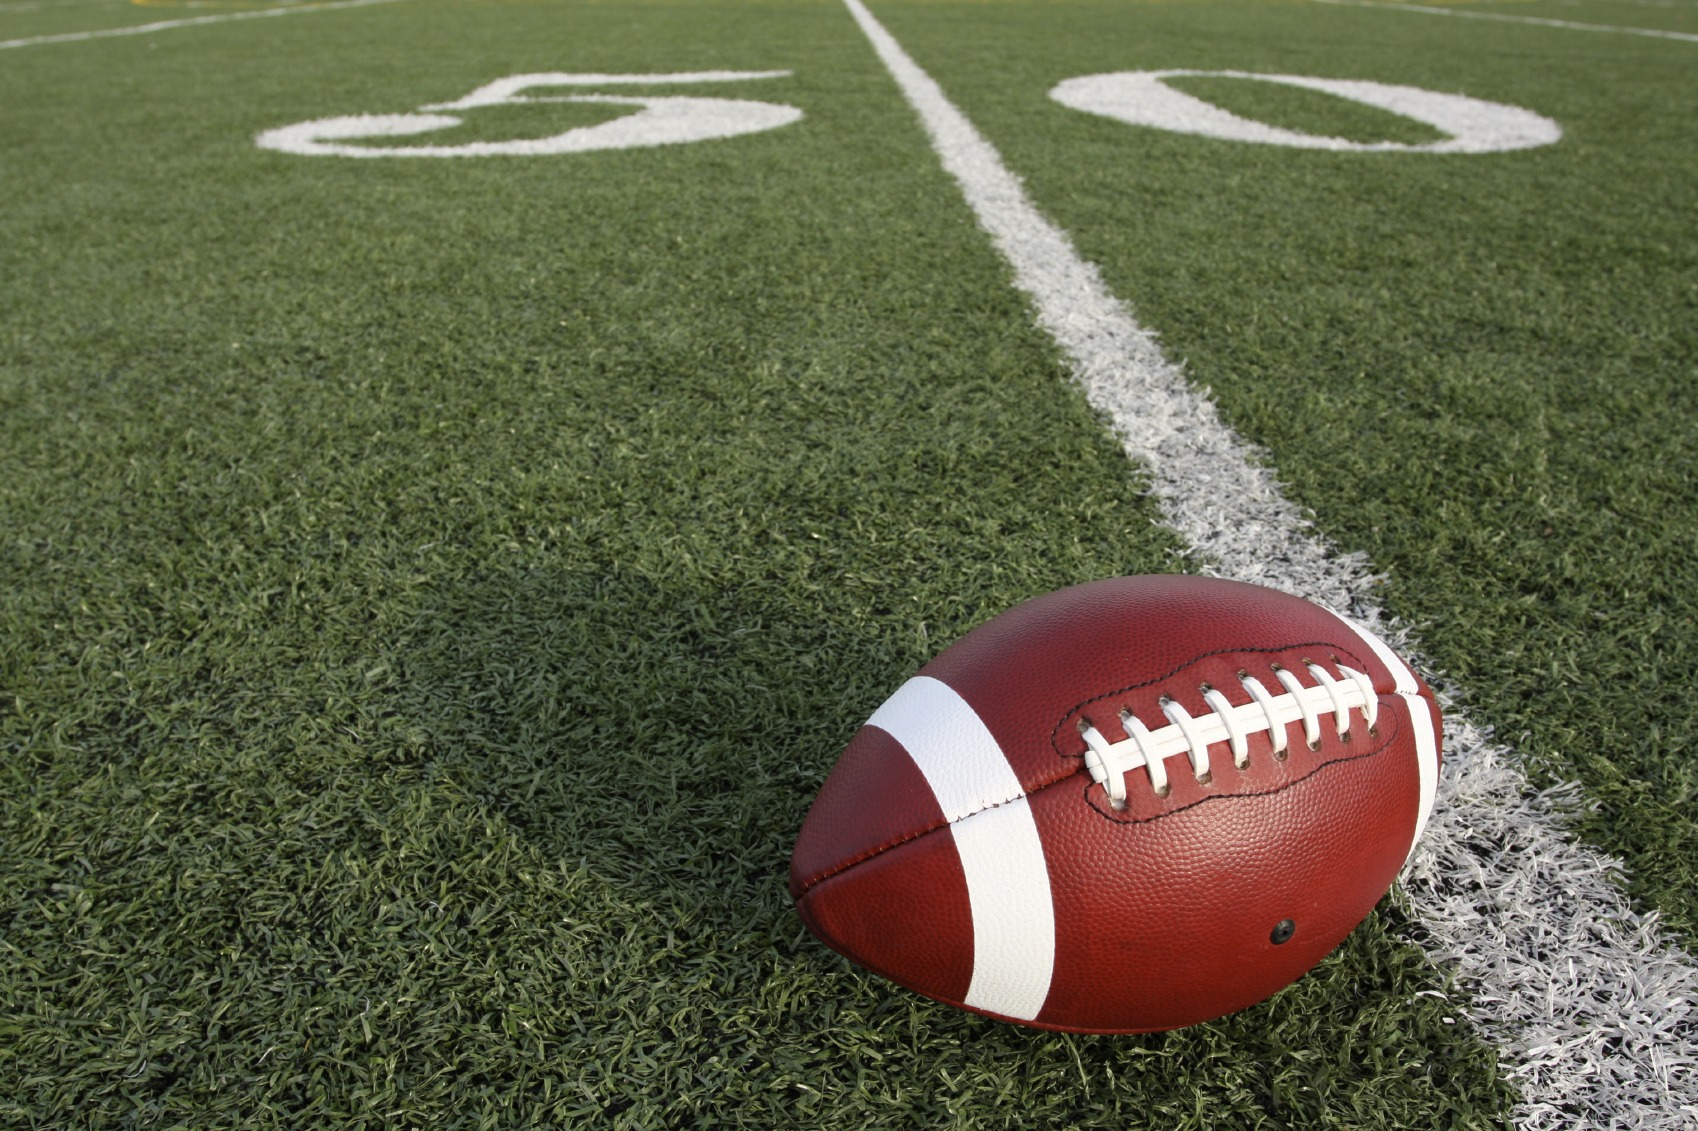 Weekly Economic News Roundup and Super Bowl spending